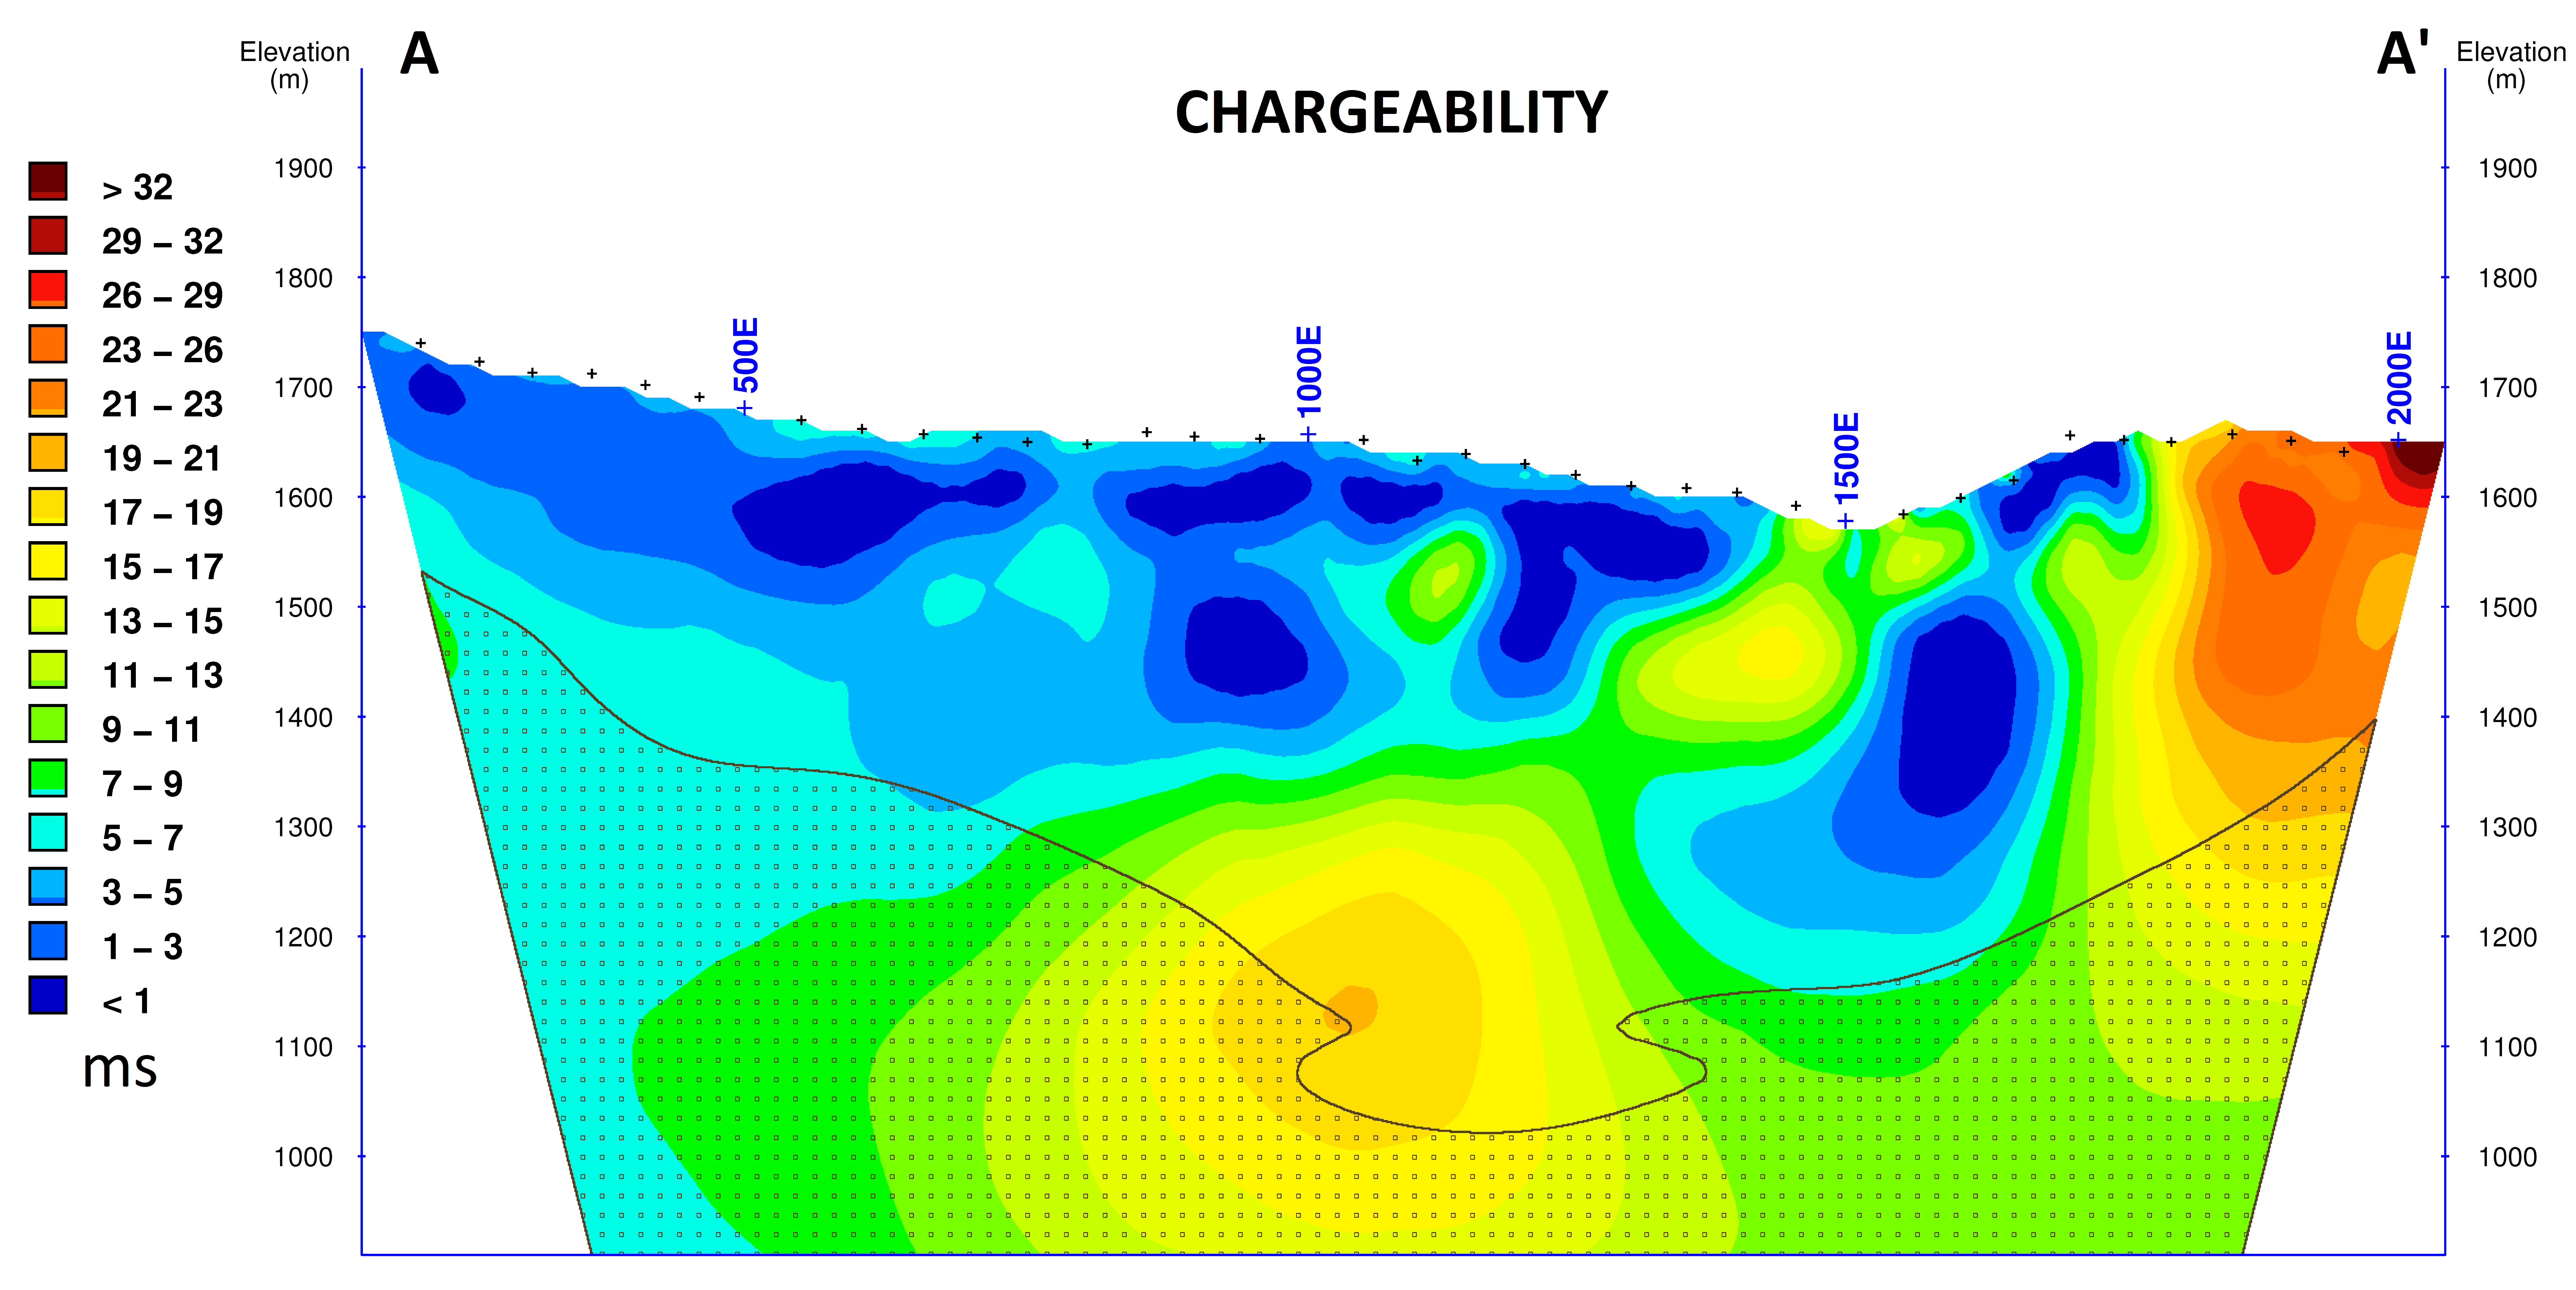 Chargeability